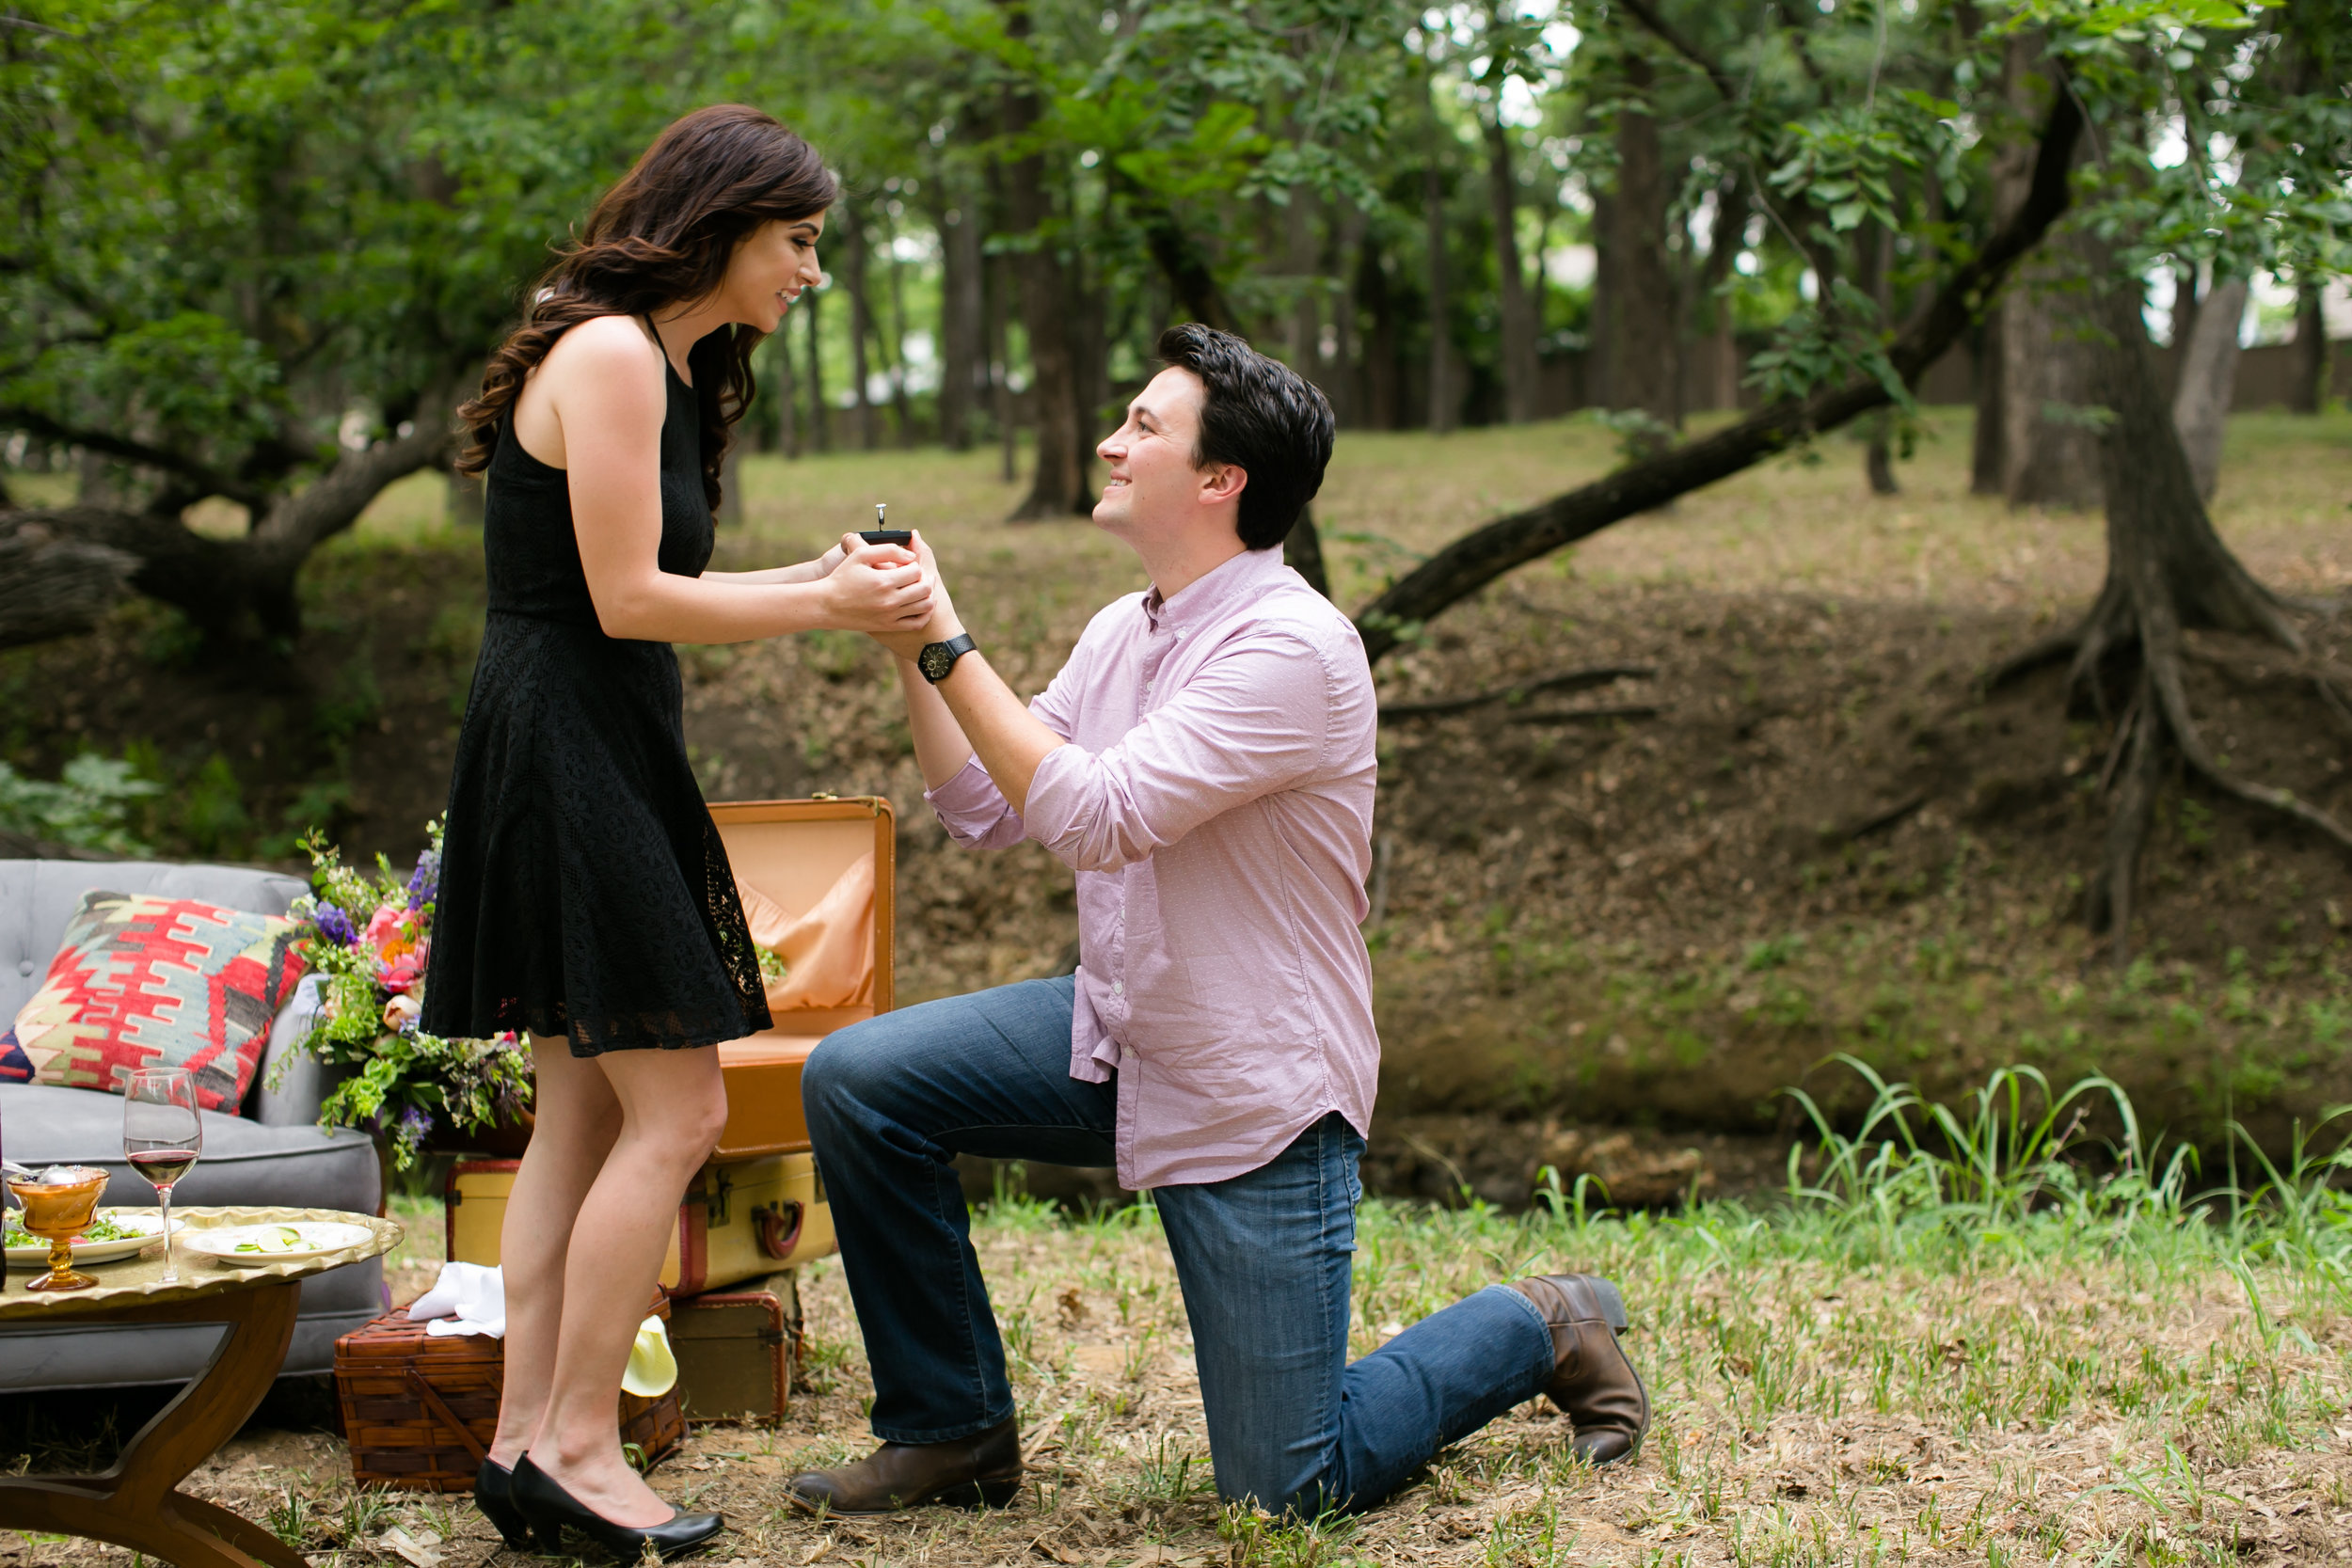 Engagement Proposal Rent My Dust vintage rentals  (280).jpg